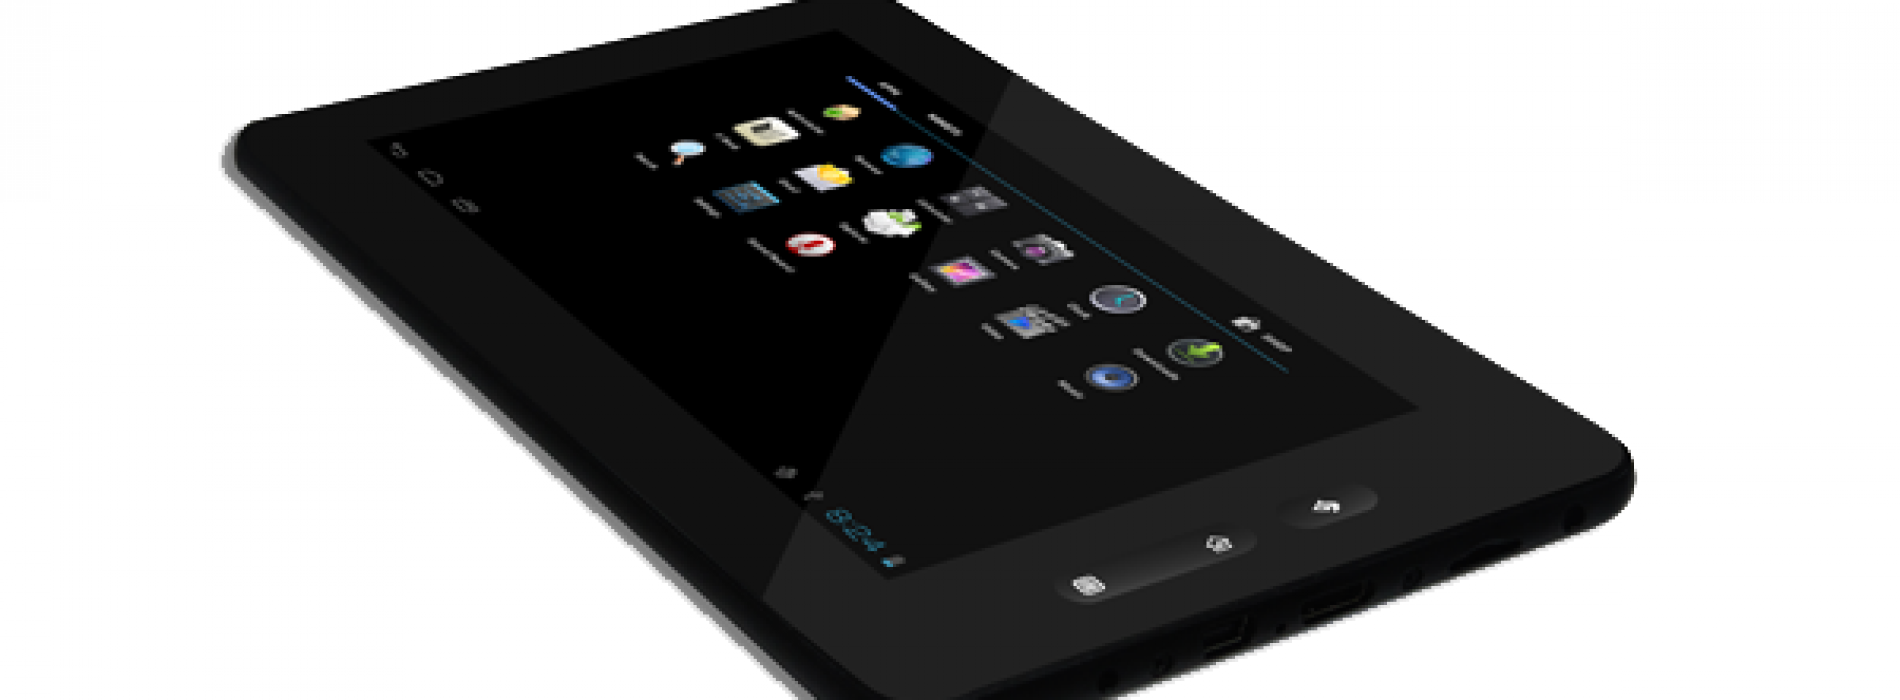 Meet the IdolPad PLUS, a $98 Android 4.0 tablet